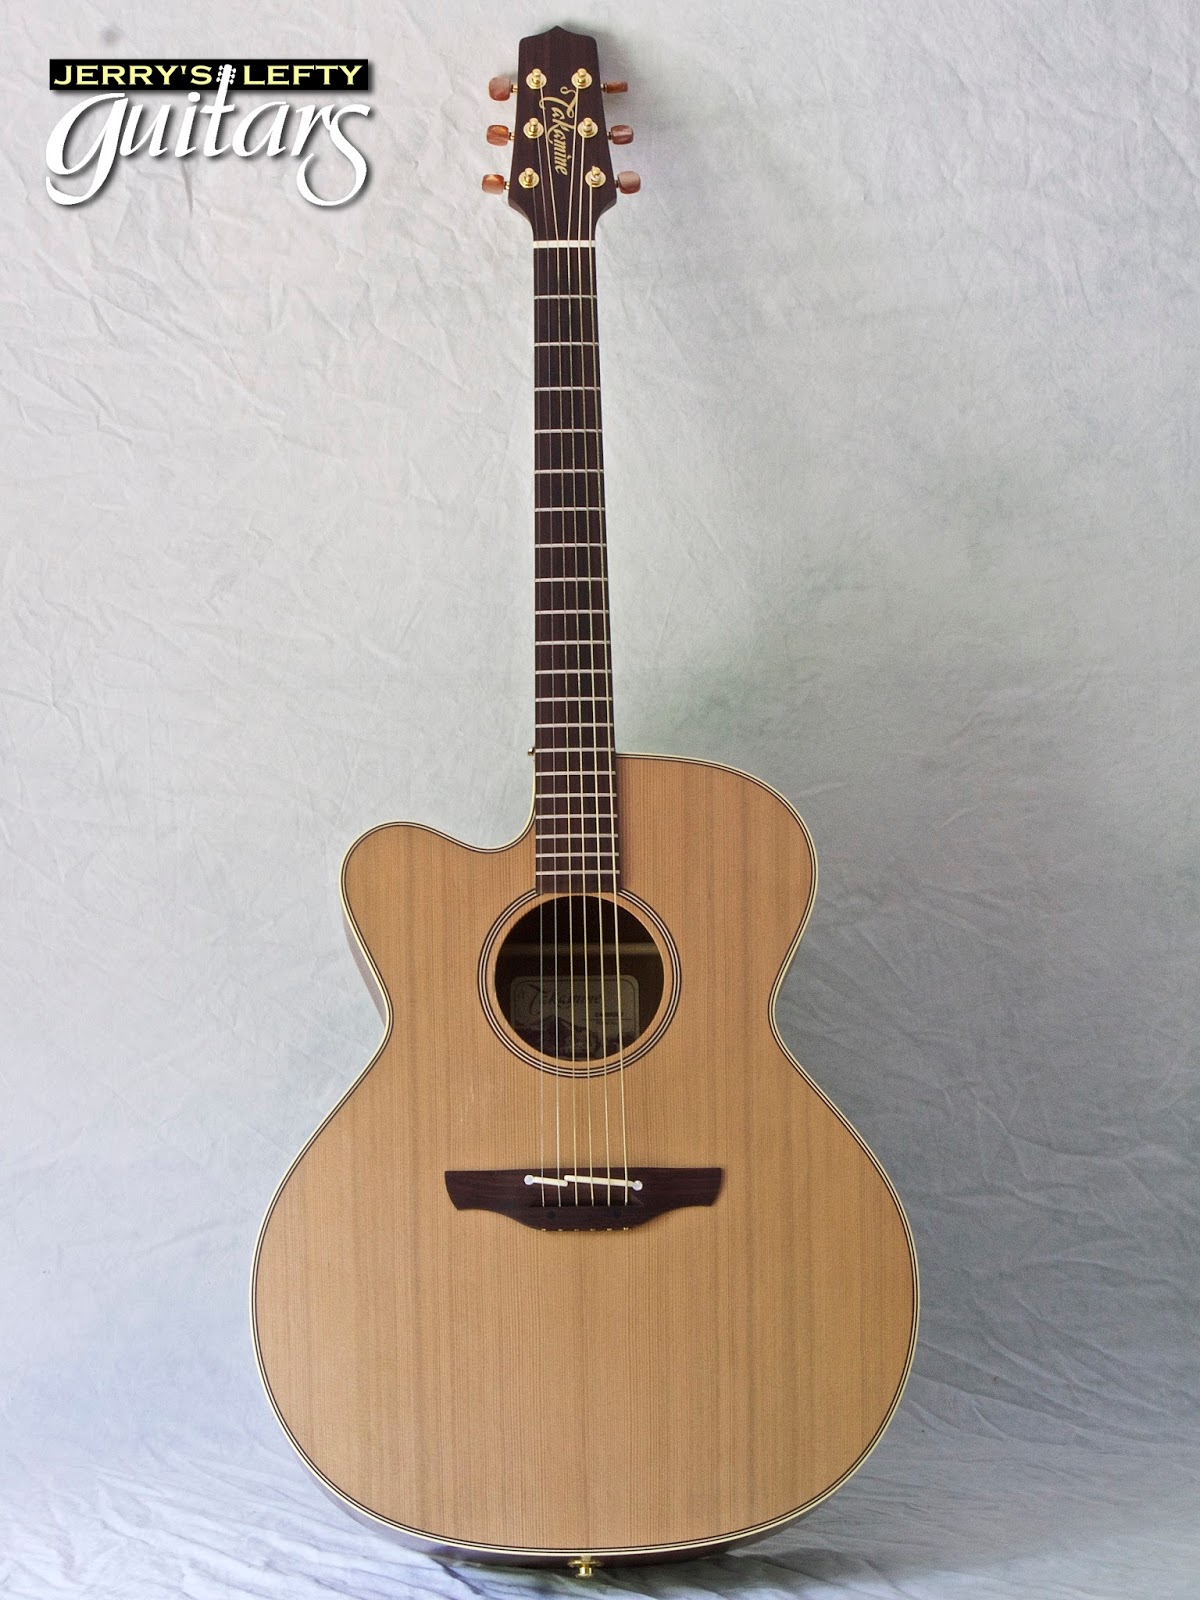 Jerry's Lefty Guitars newest guitar arrivals. Updated ...